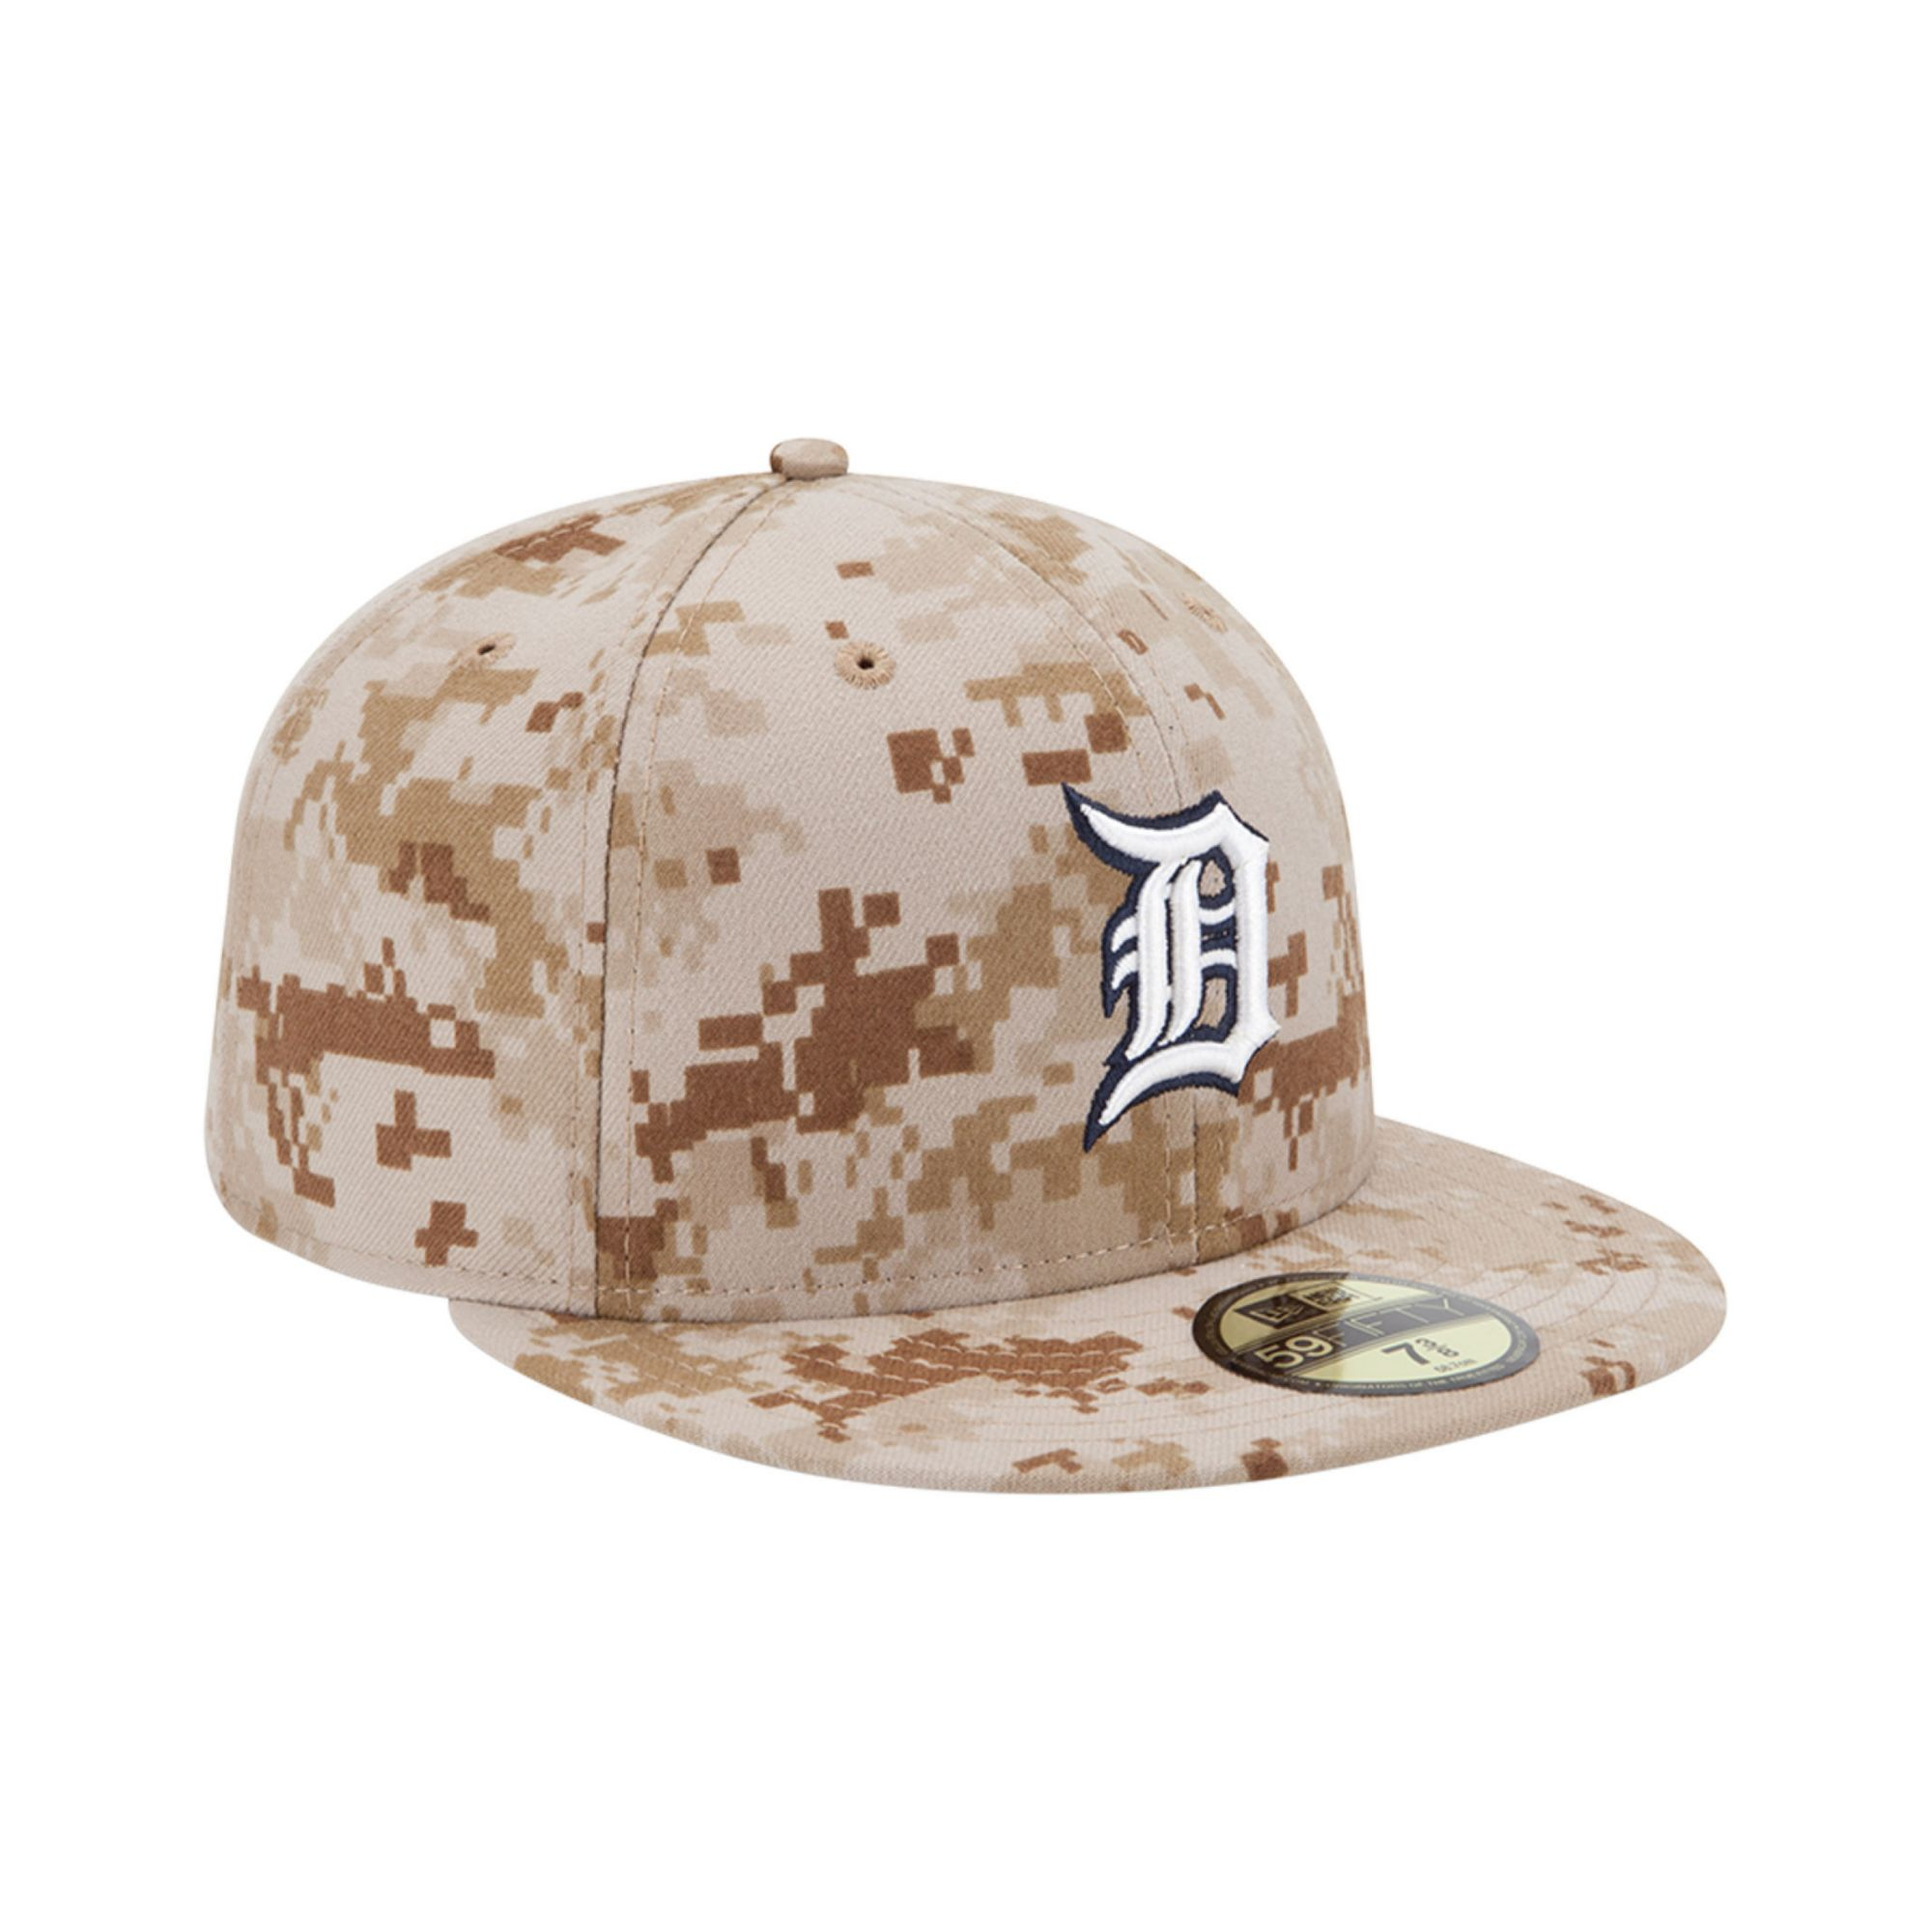 5dcaec1654f95a KTZ Detroit Tigers Mlb Memorial Day Stars Stripes 59fifty Cap in ...